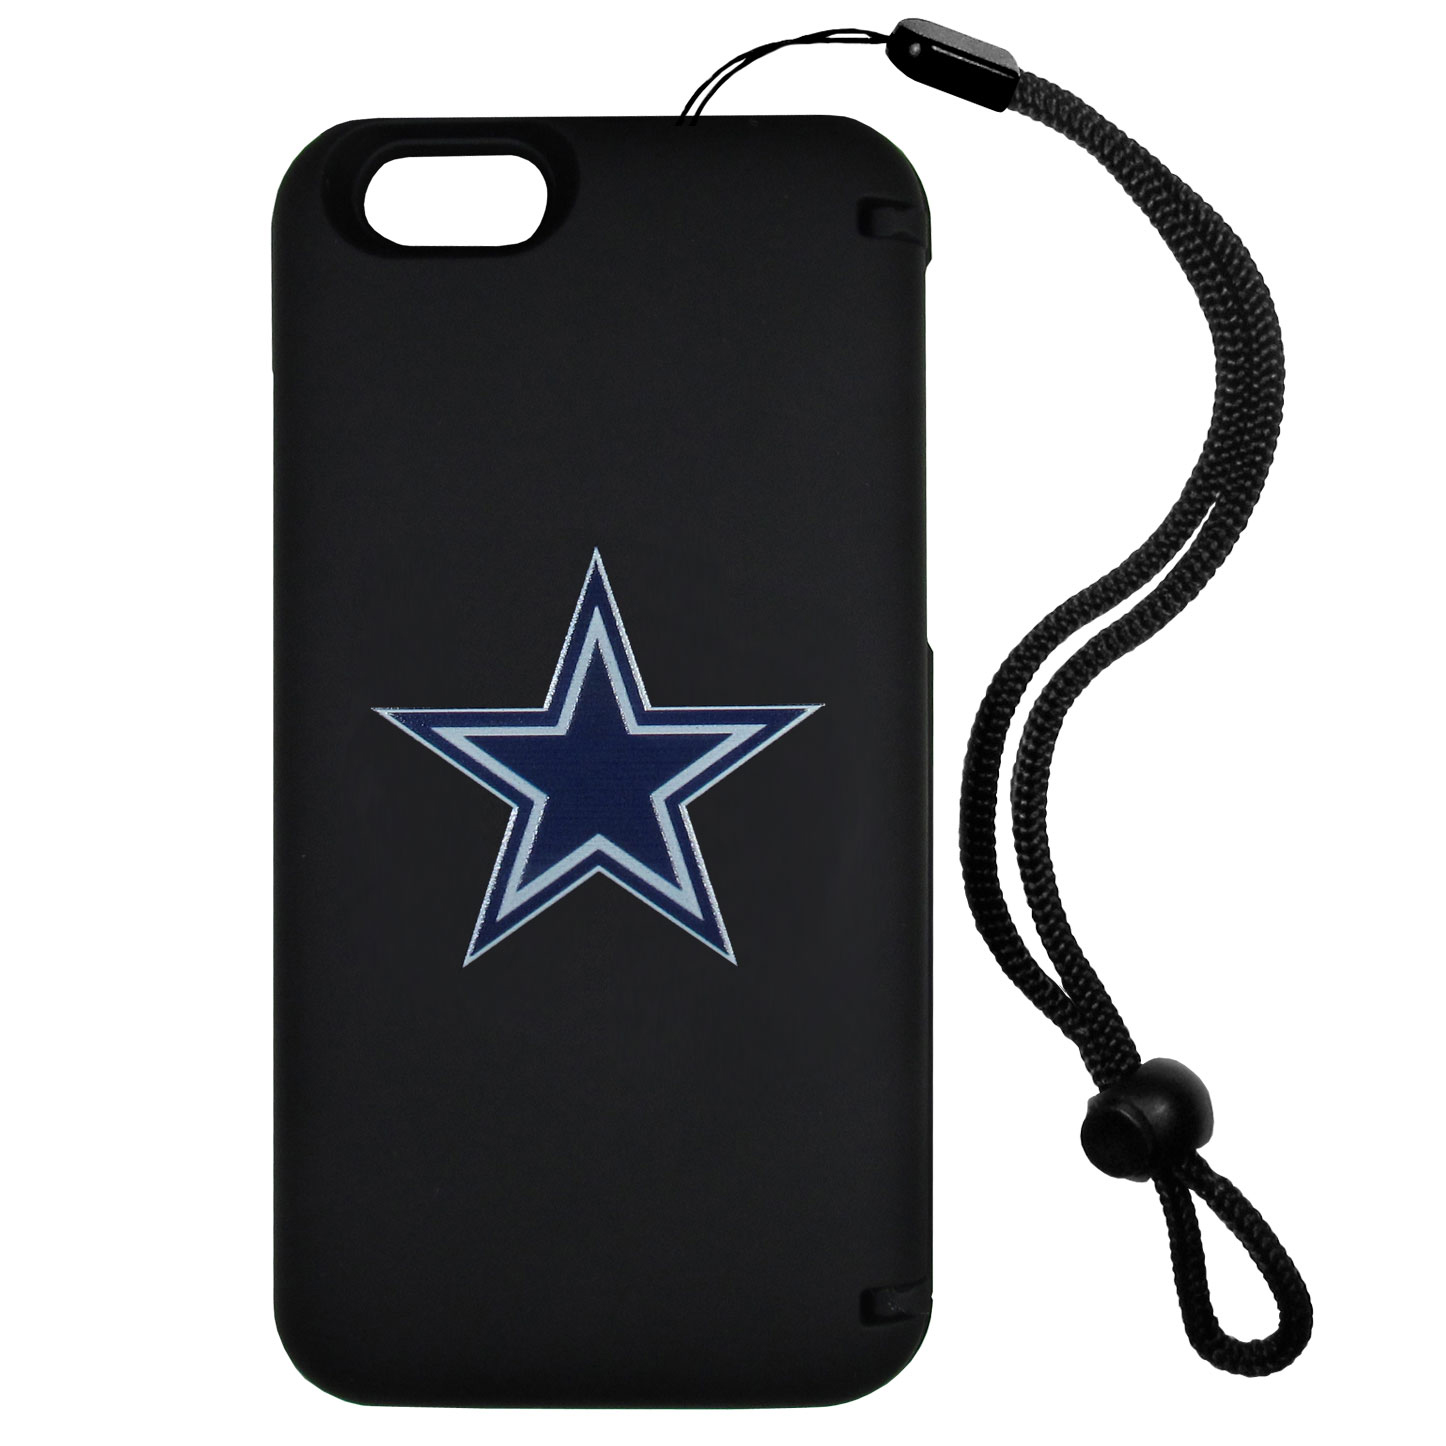 Dallas Cowboys iPhone 6 Everything Case - This case really does have everything but the kitchen sink! The hidden compartment lets you keep your cards, money and tickets to the big game safe and secure and has a compact mirror so you can make sure your game face is ready to go. It also comes with a kickstand to make chatting and watching videos a breeze. The wrist strap allows you to travel with ease with your everything case. If that's not enough, it also comes with the Dallas Cowboys logo printed in expert detail on the front.